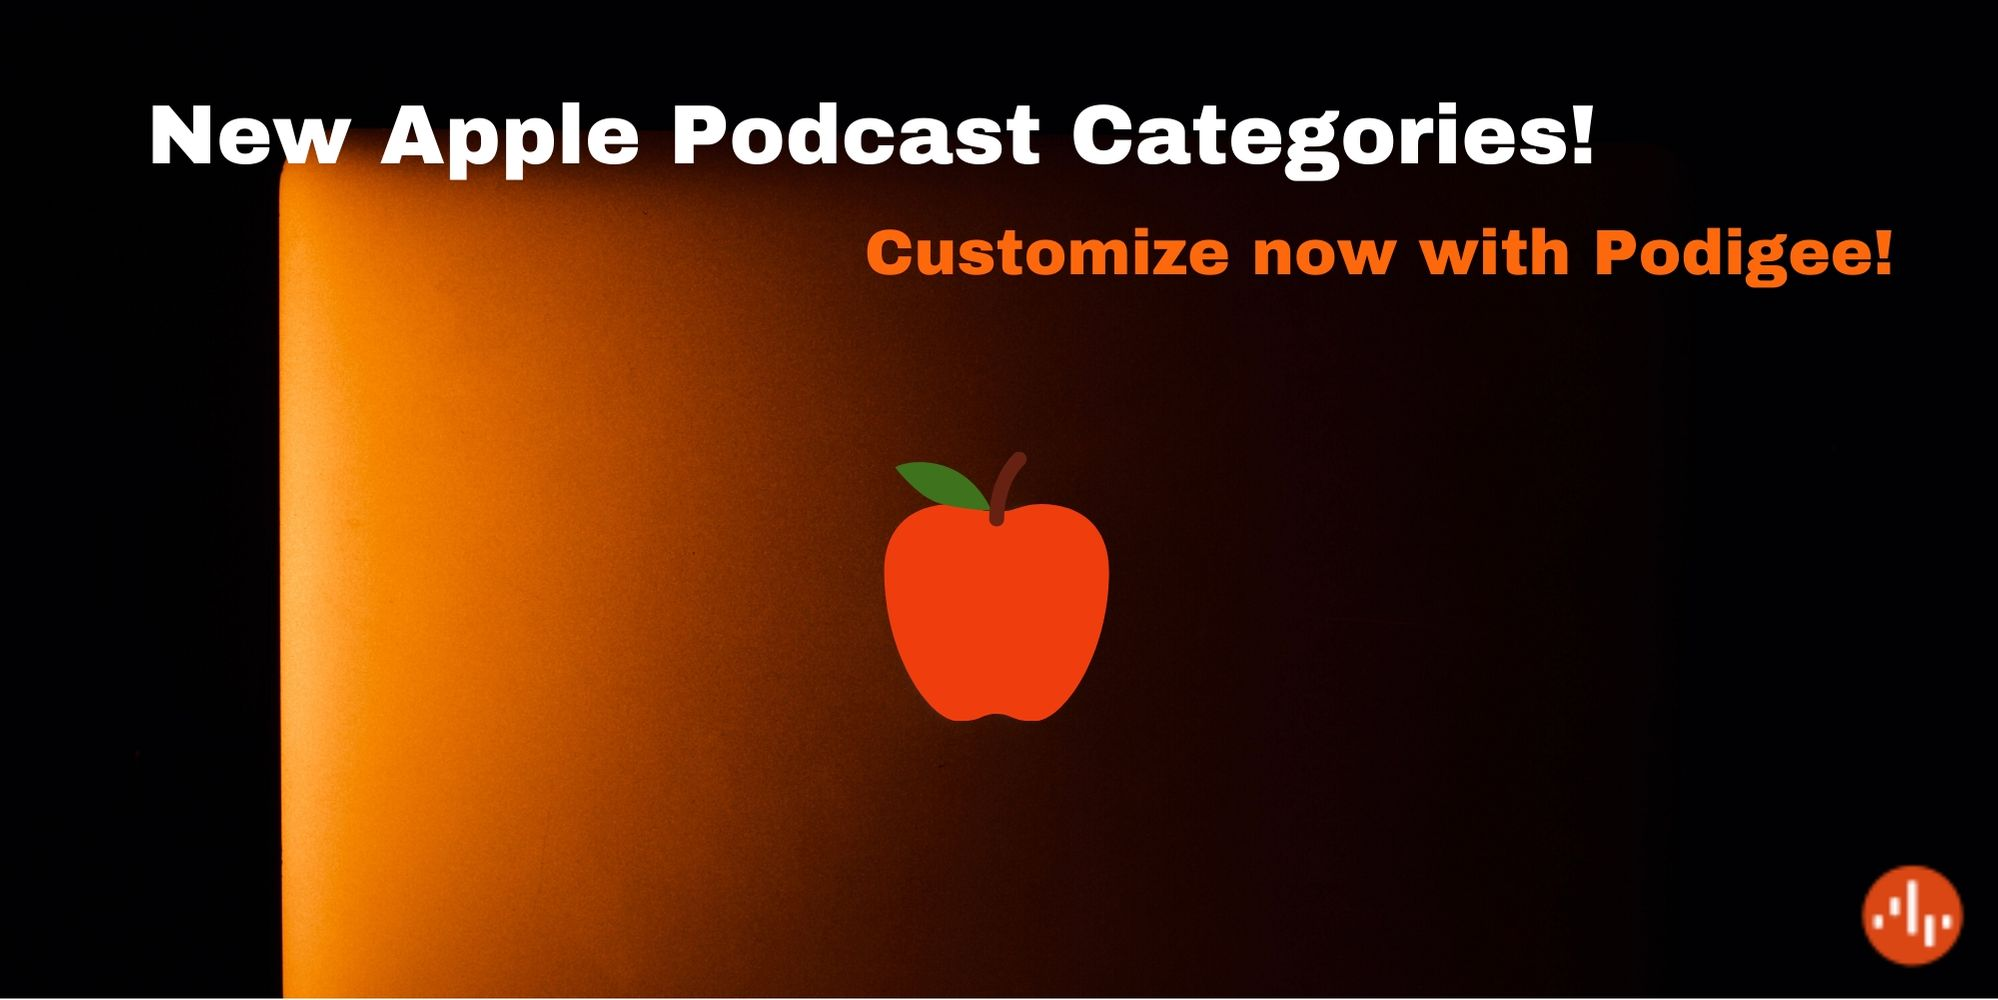 New categories on Apple Podcasts